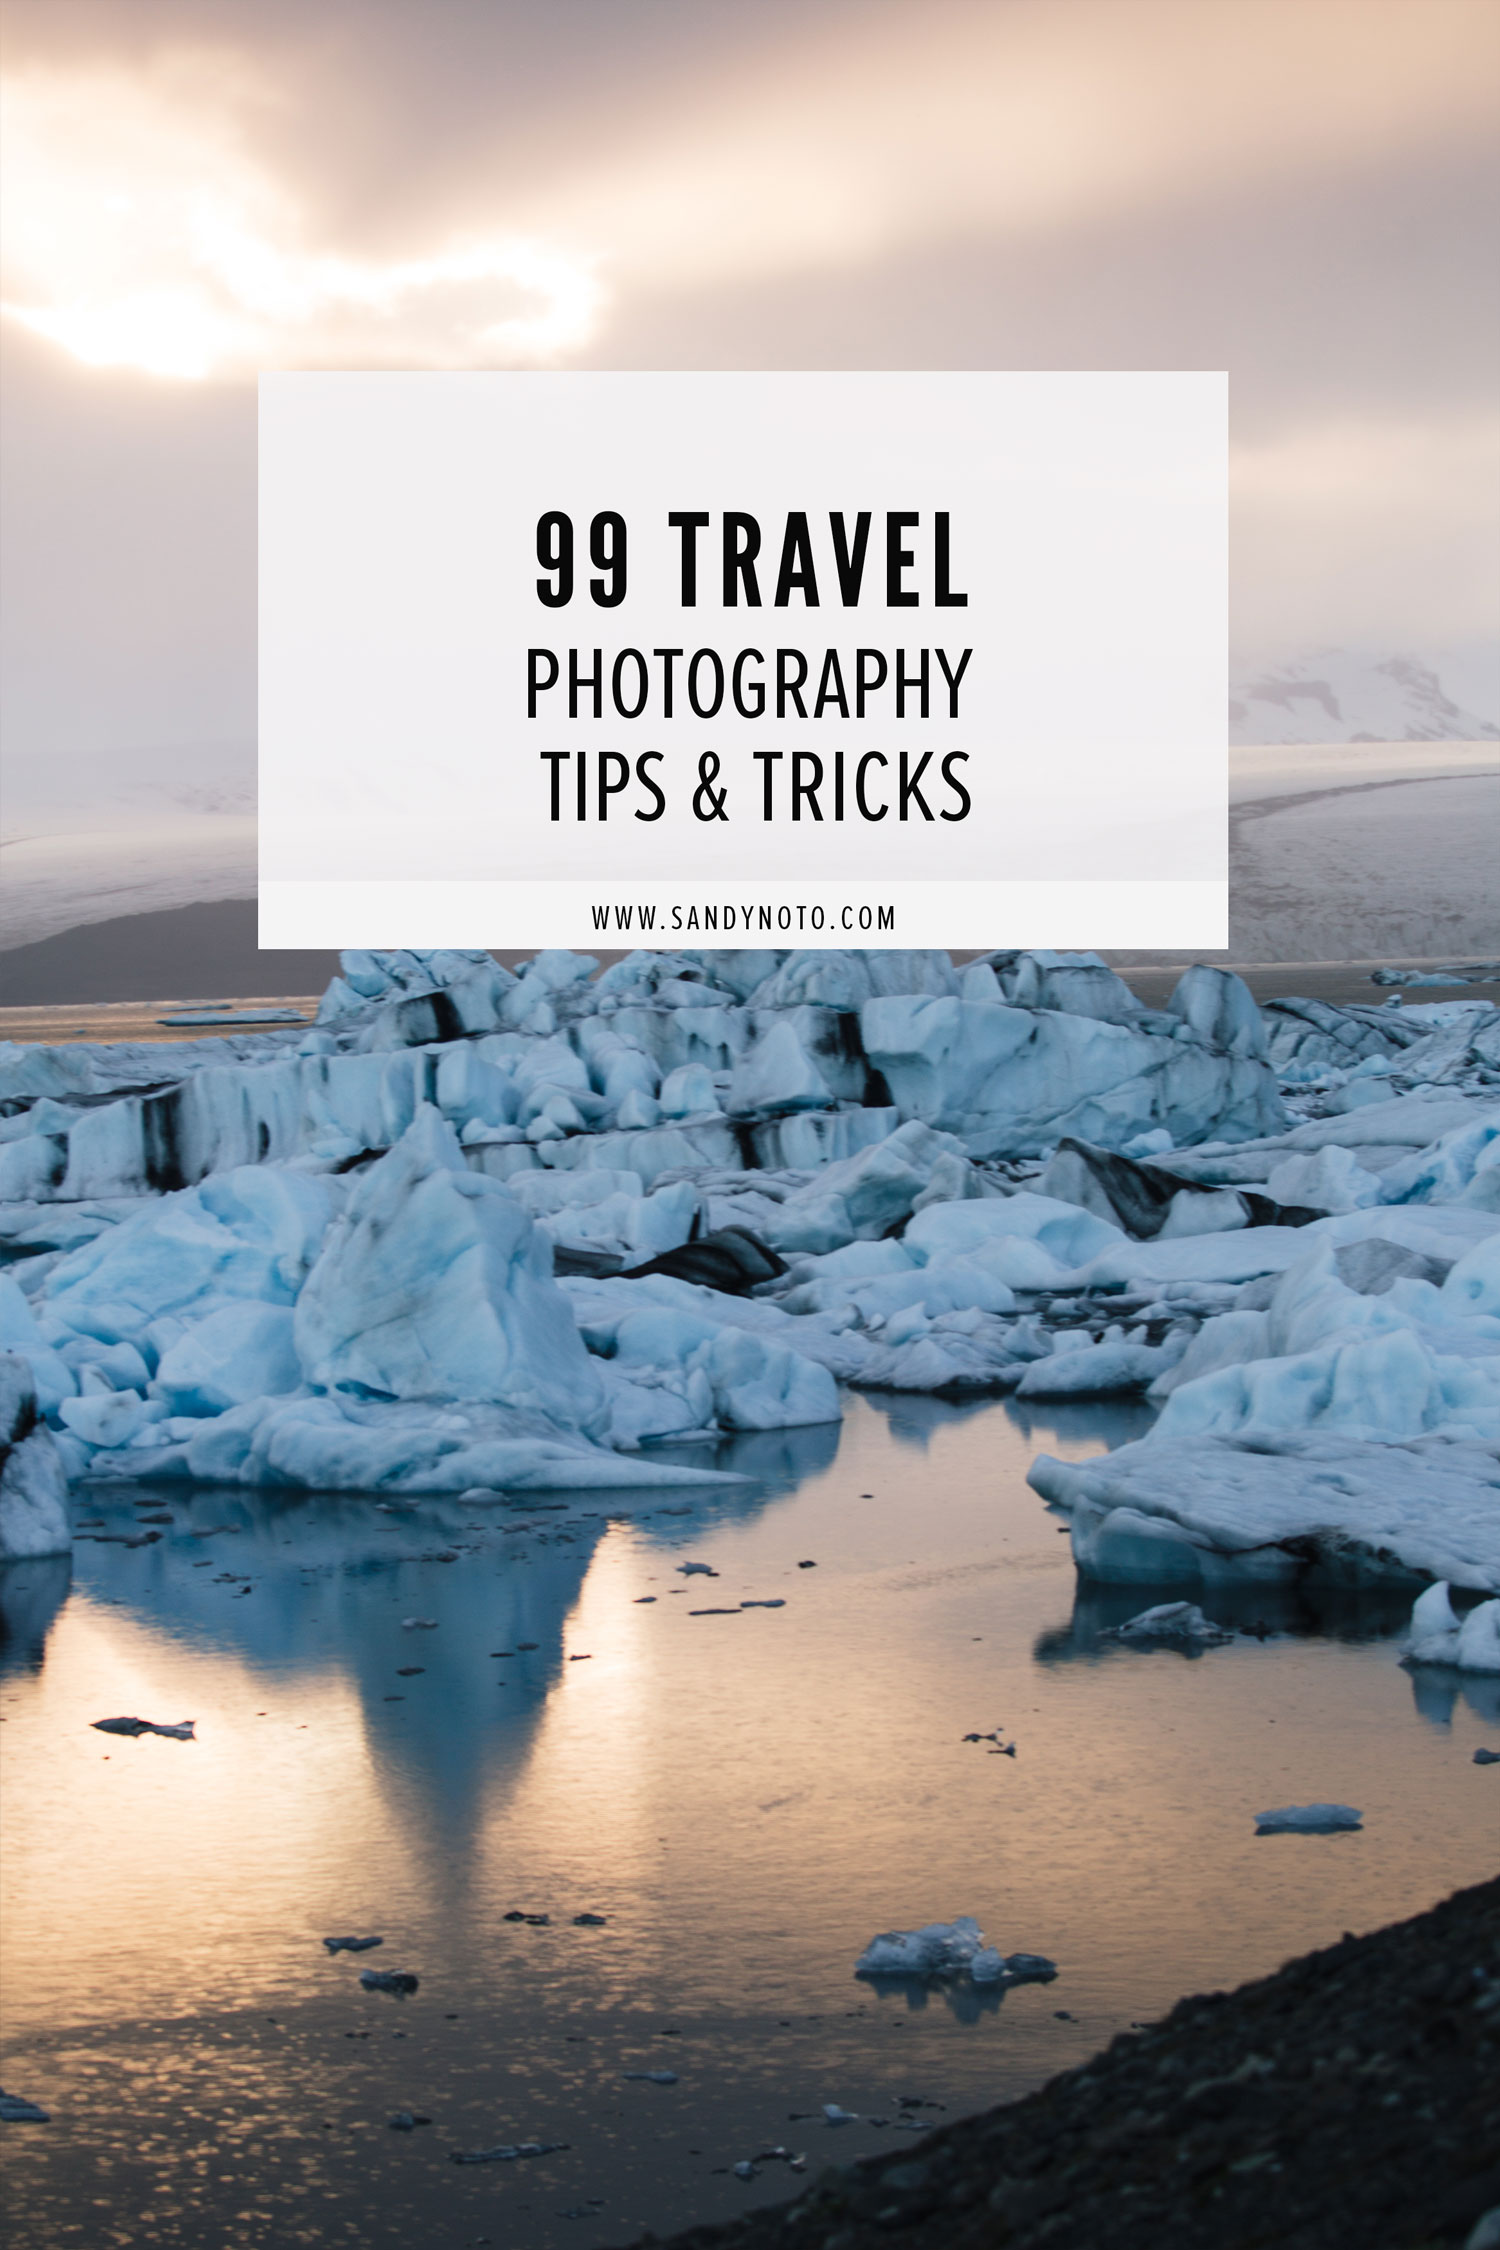 99 Travel Photography Tips